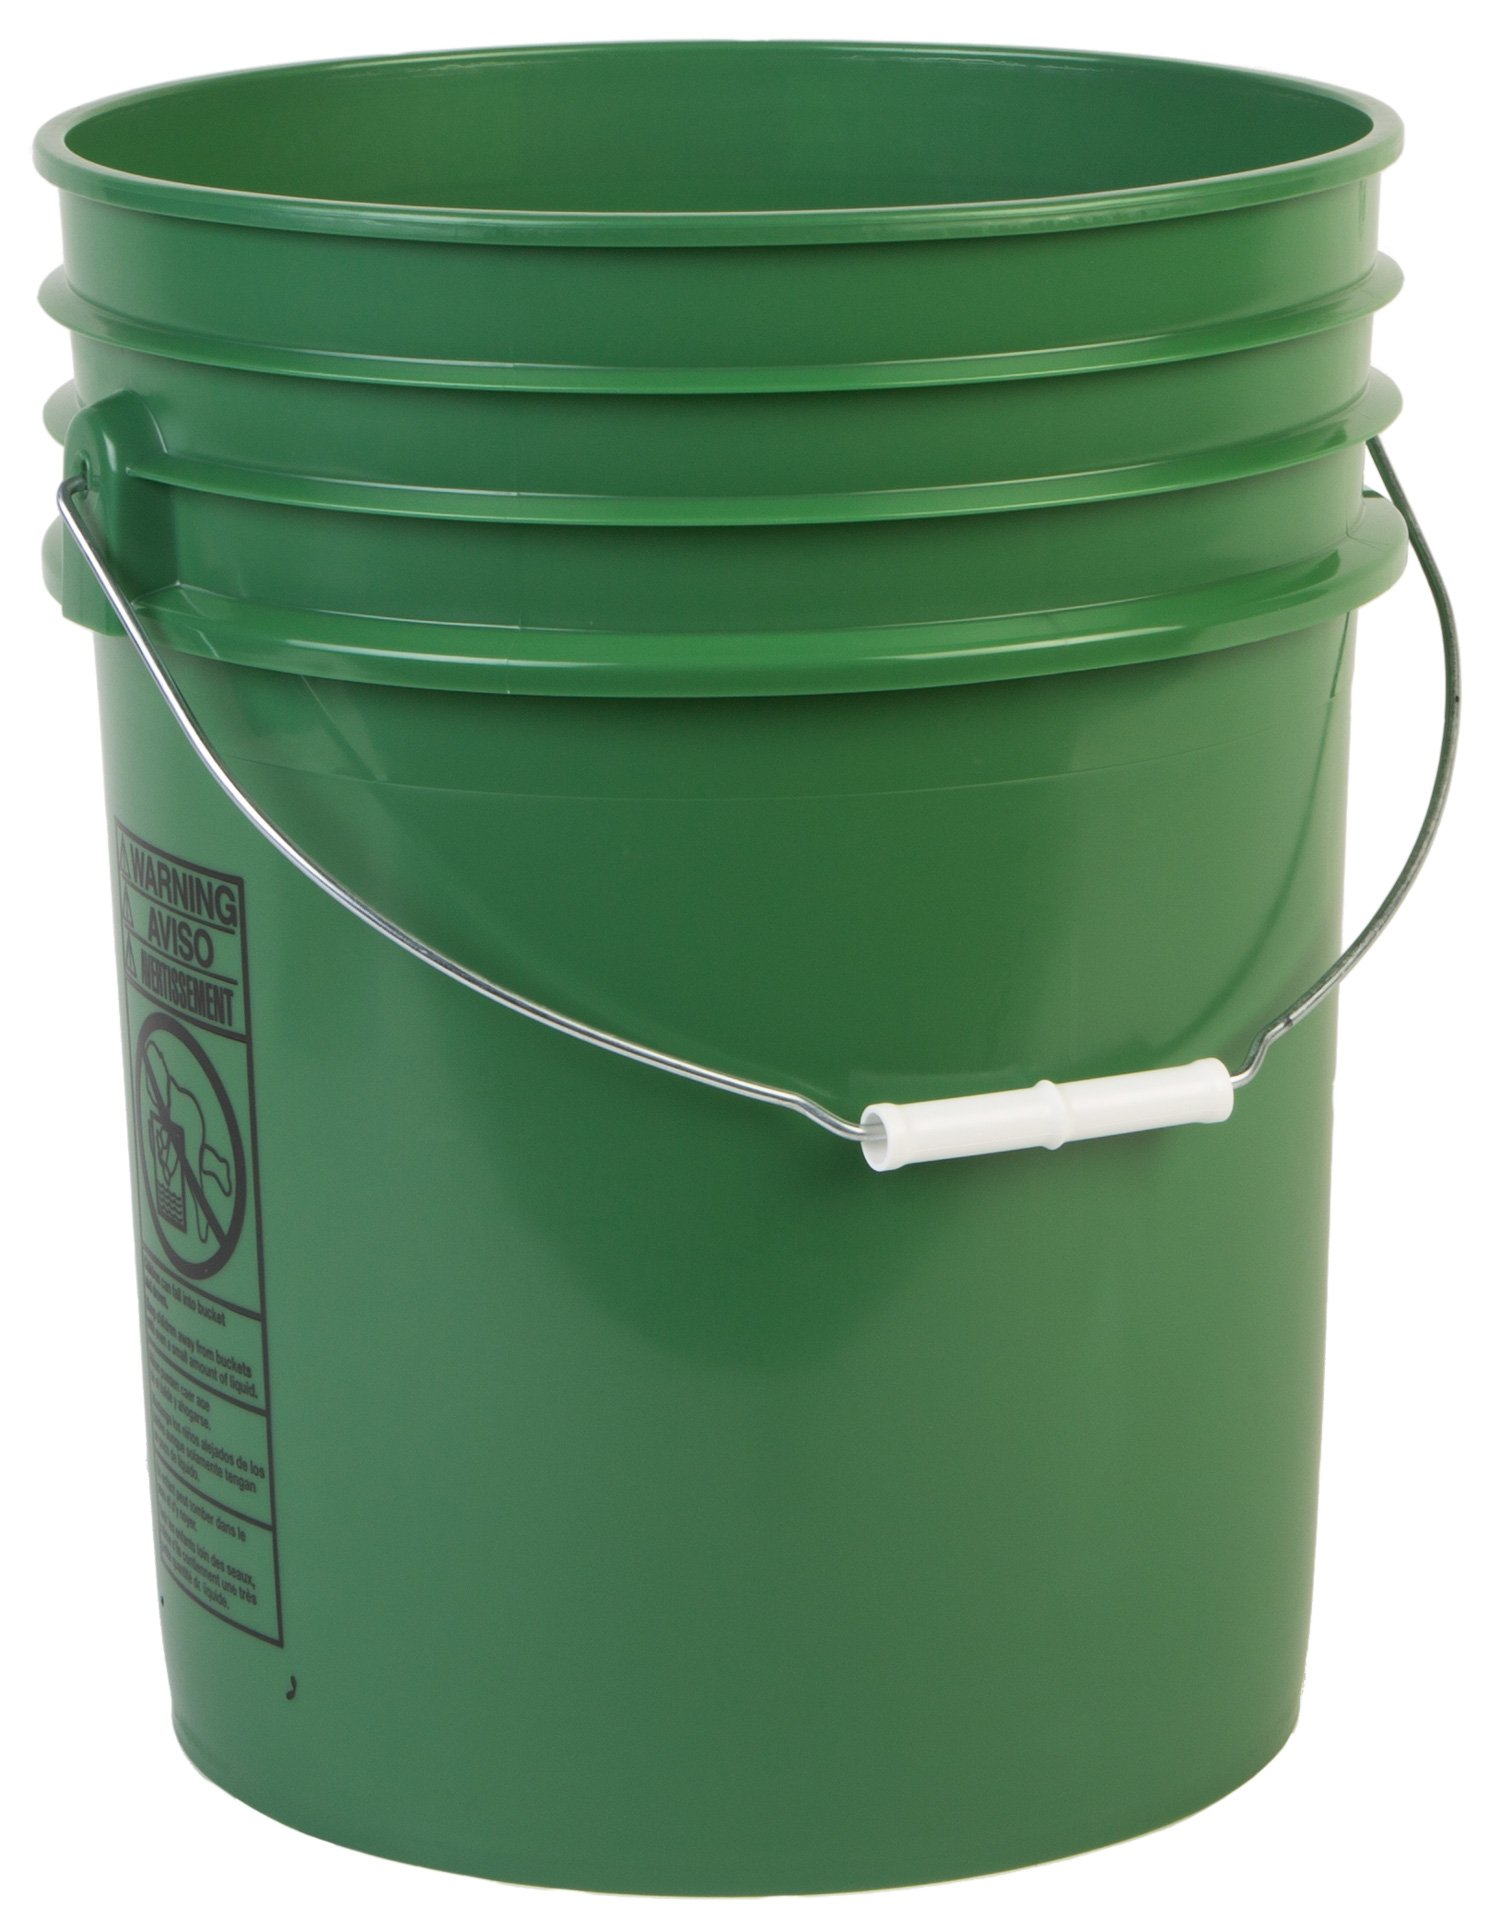 Hudson Exchange Premium 5 Gallon Bucket, HDPE, Green, 12 Pack